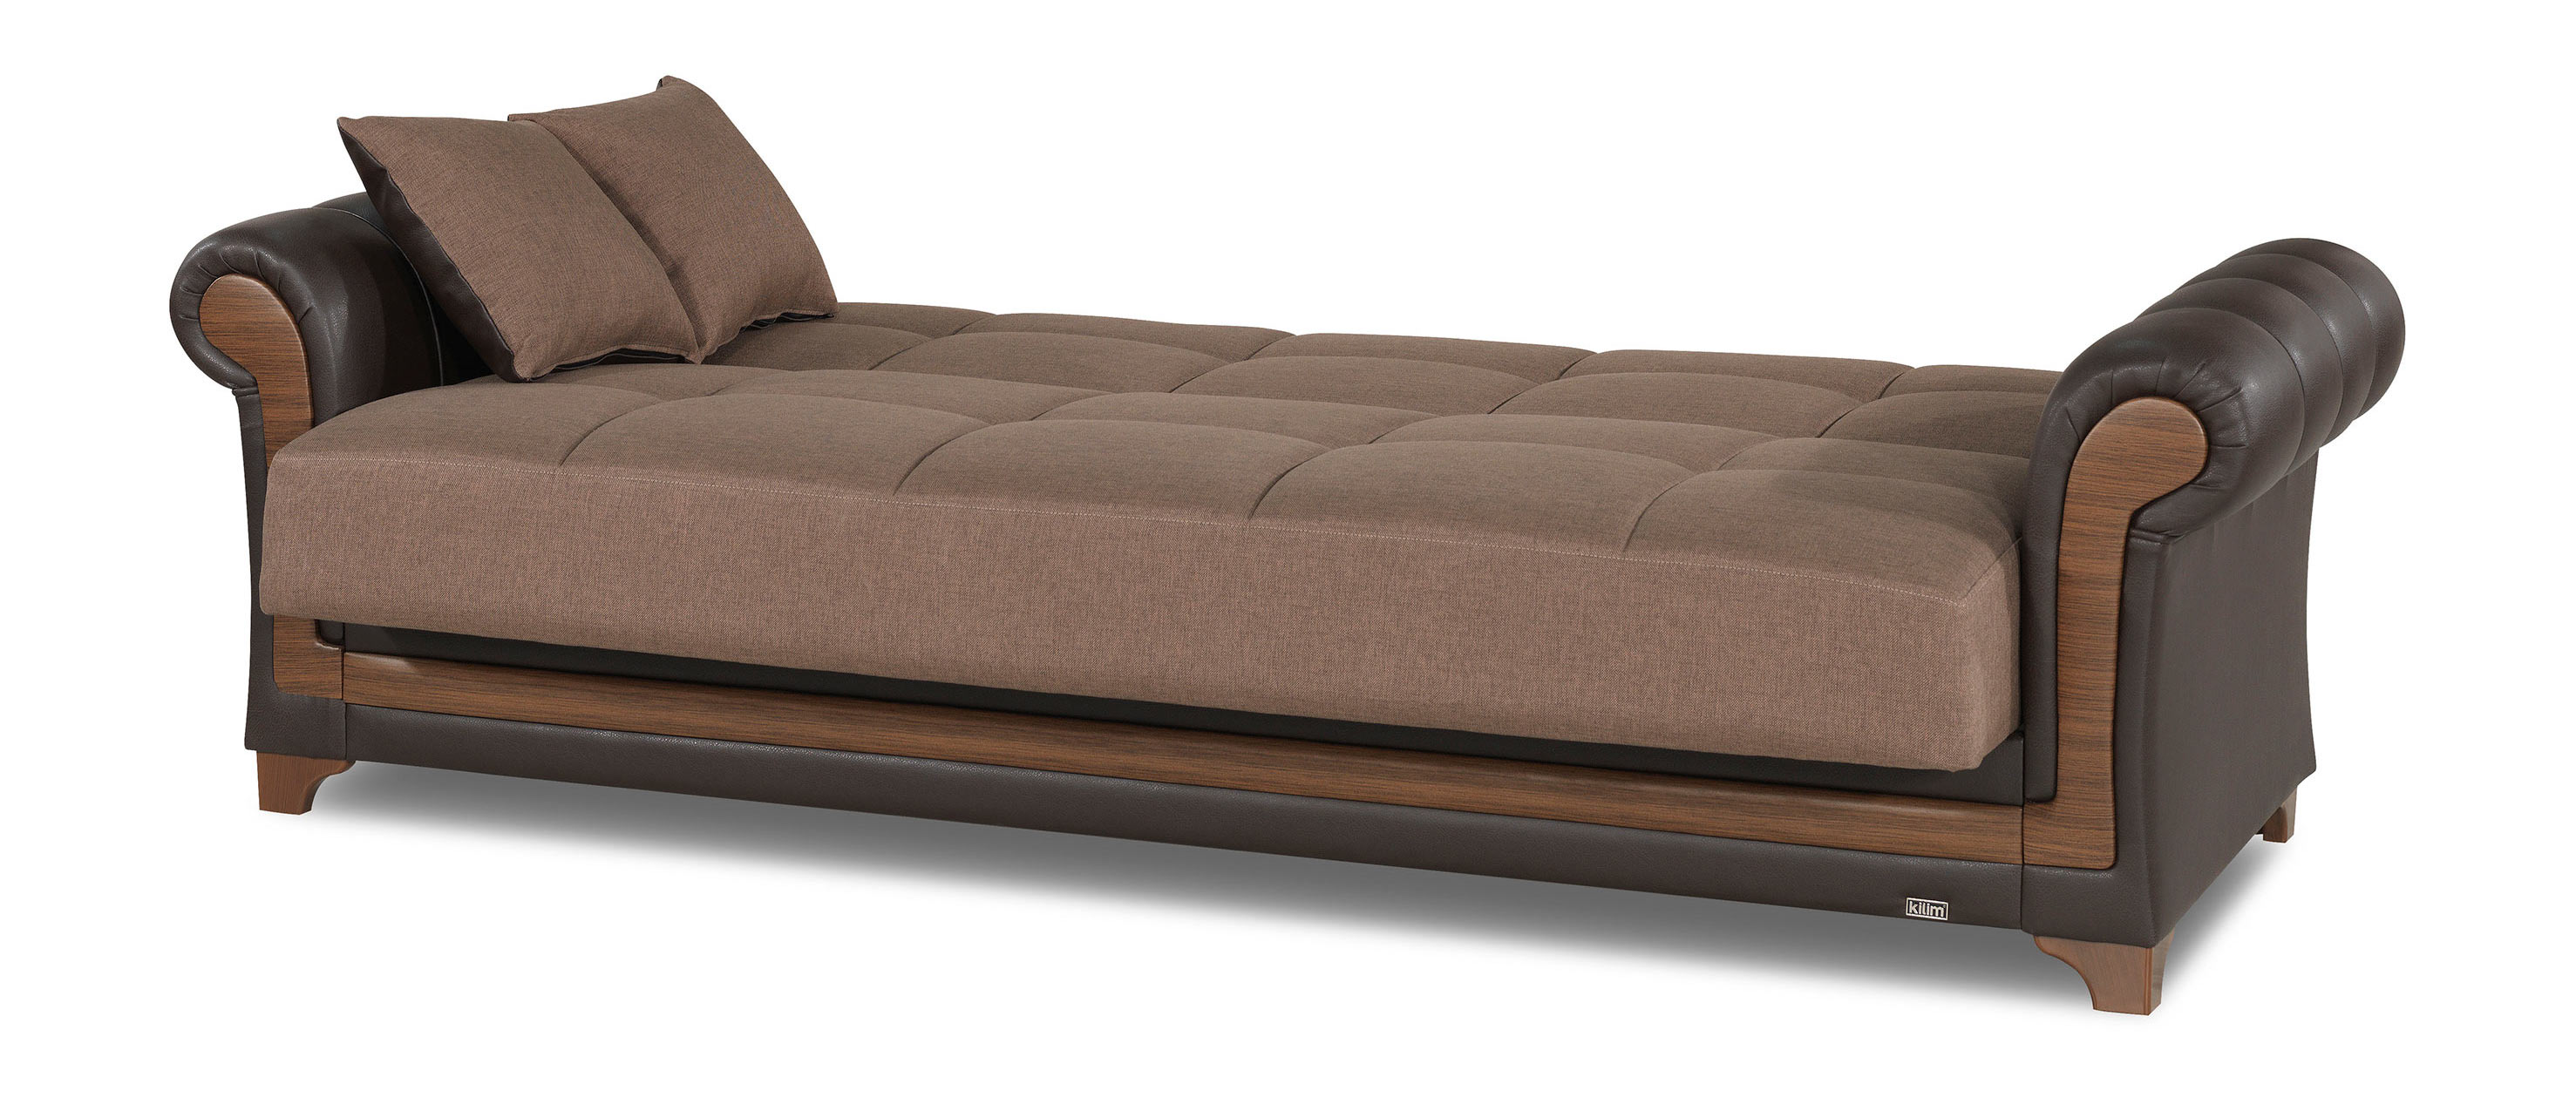 Sofa Bed In Dreams Dream Decor Brown Convertible Sofa Bed By Casamode